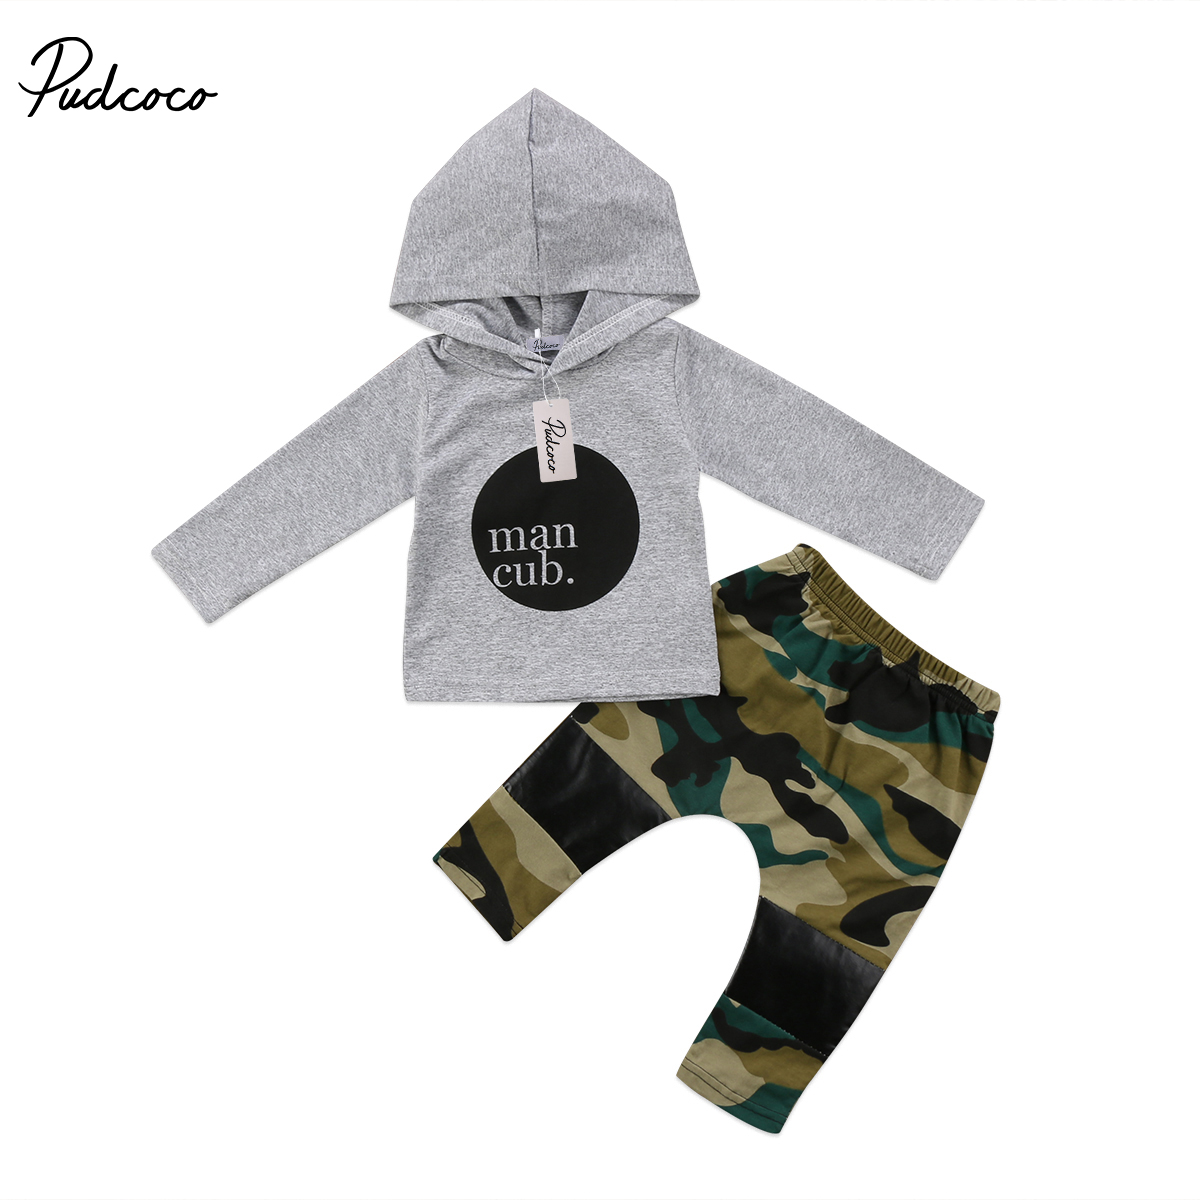 Pudcoco 2PCS Toddler Newborn Baby Kids Boy Camouflage Hooded Clothing Sets Sweatshirt Tops+Pants 2Pcs Outfits Clothes pudcoco fashion baby sets newborn toddler baby boy girl camo t shirt tops pants outfits clothes set 0 24m